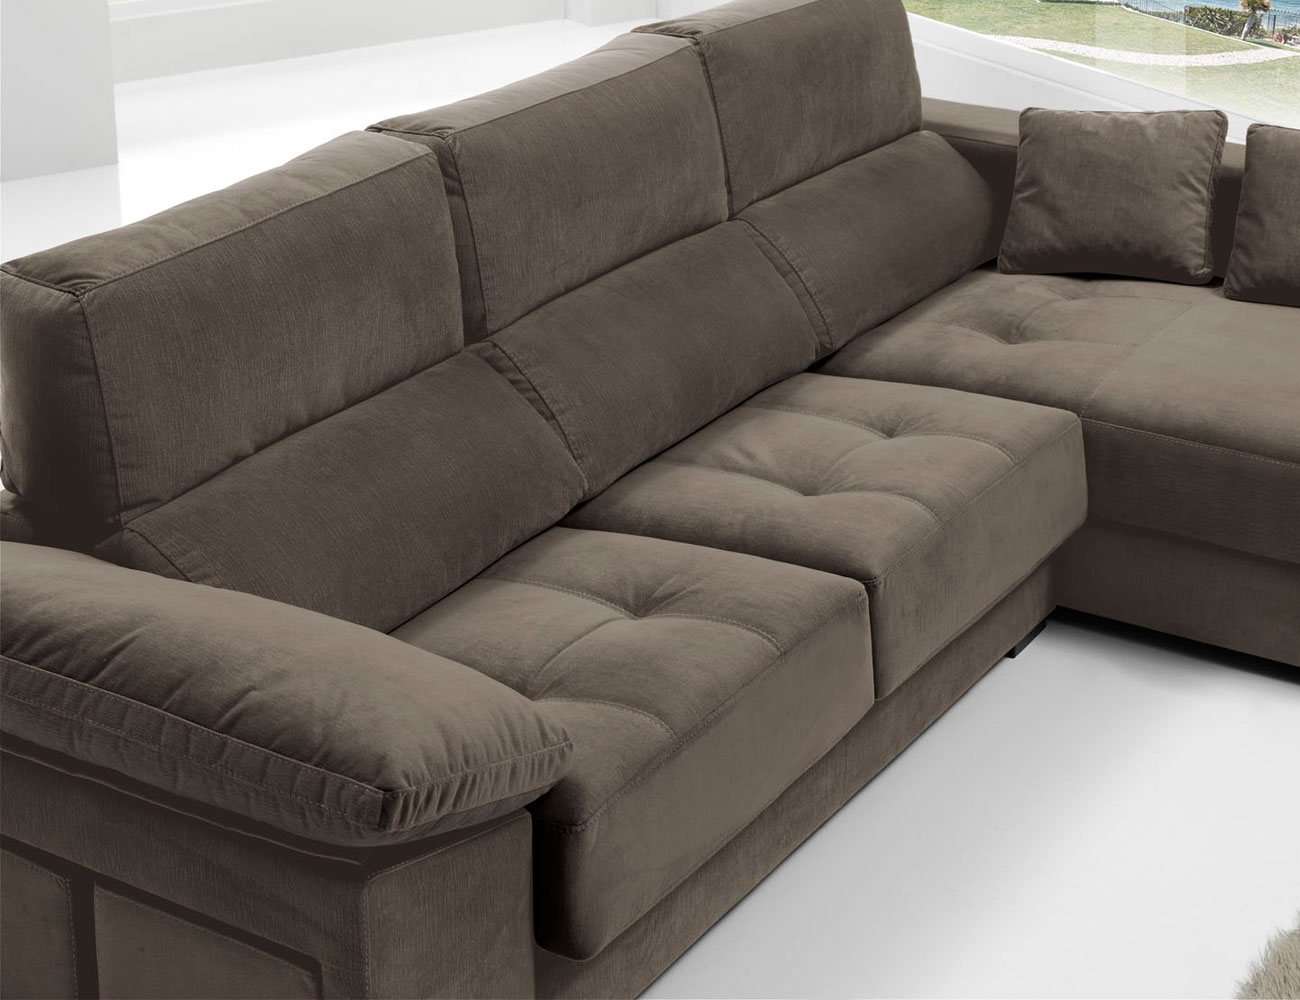 Sofa chaiselongue anti manchas bering pouf 271